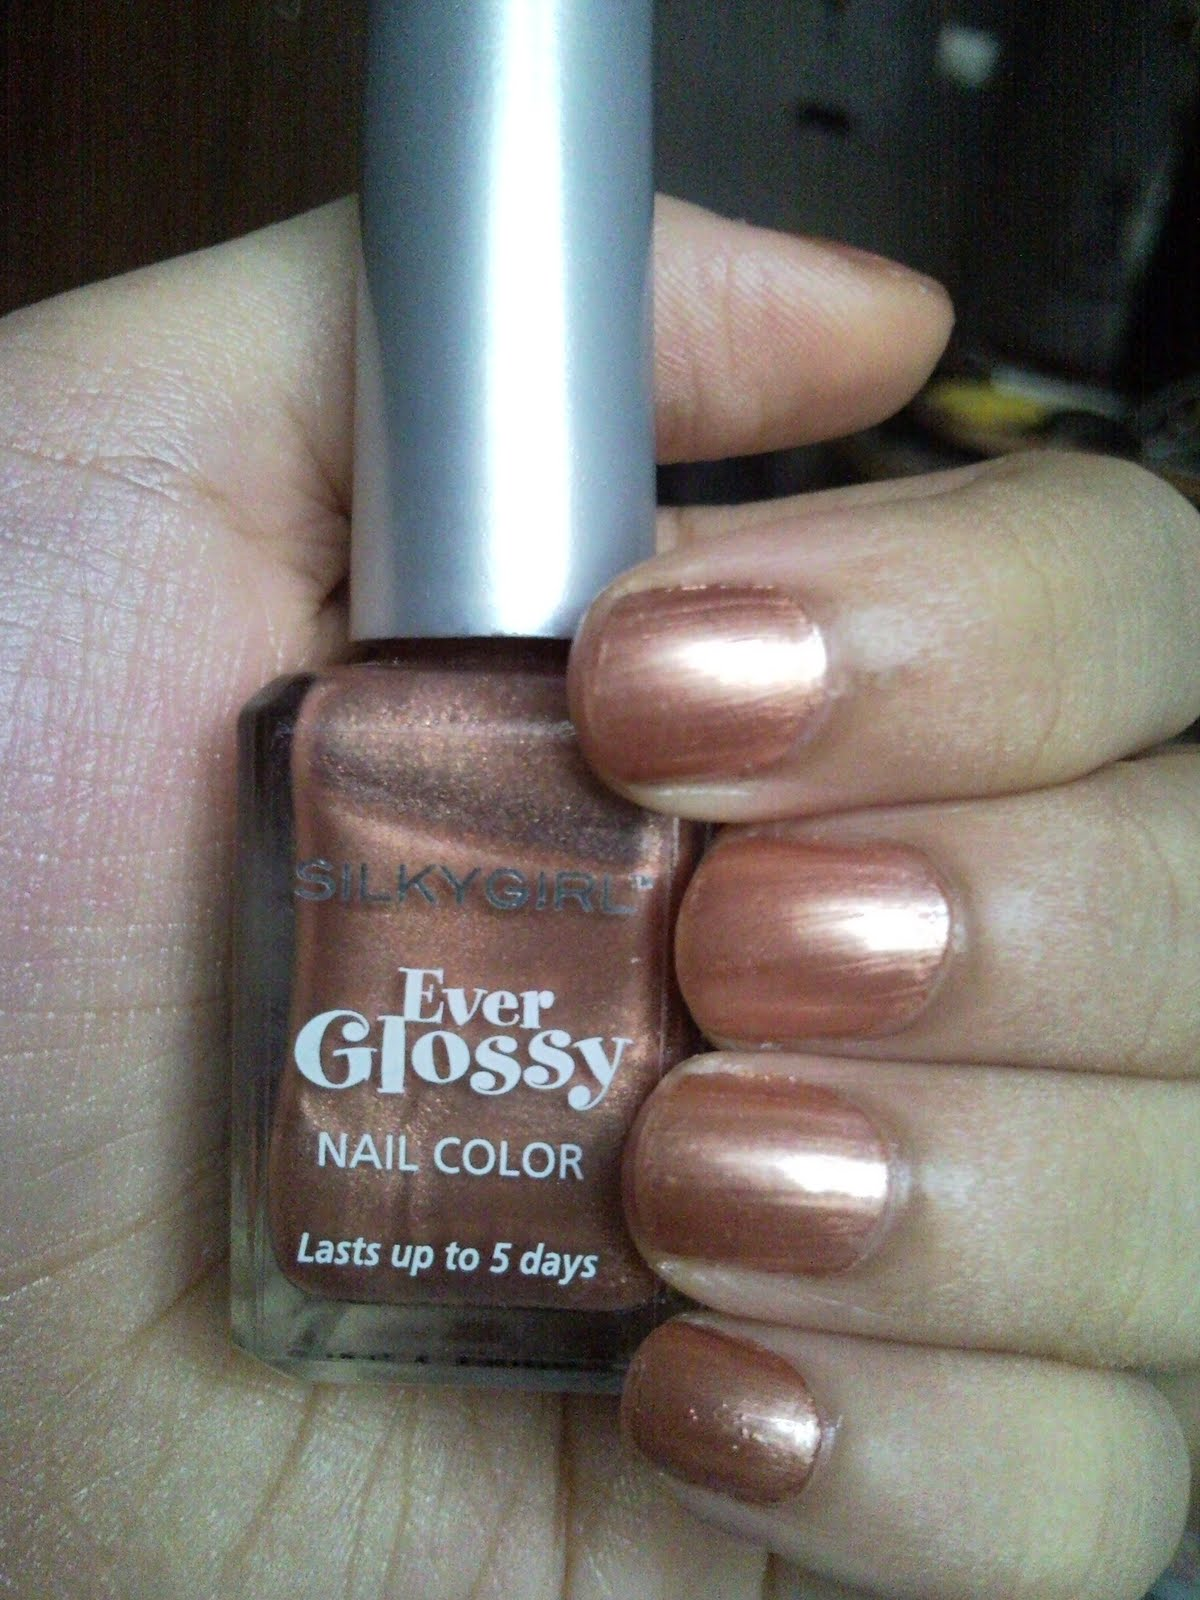 Silkygirl Roundup Part 1: Ever Glossy Nail Colour in Copper ...